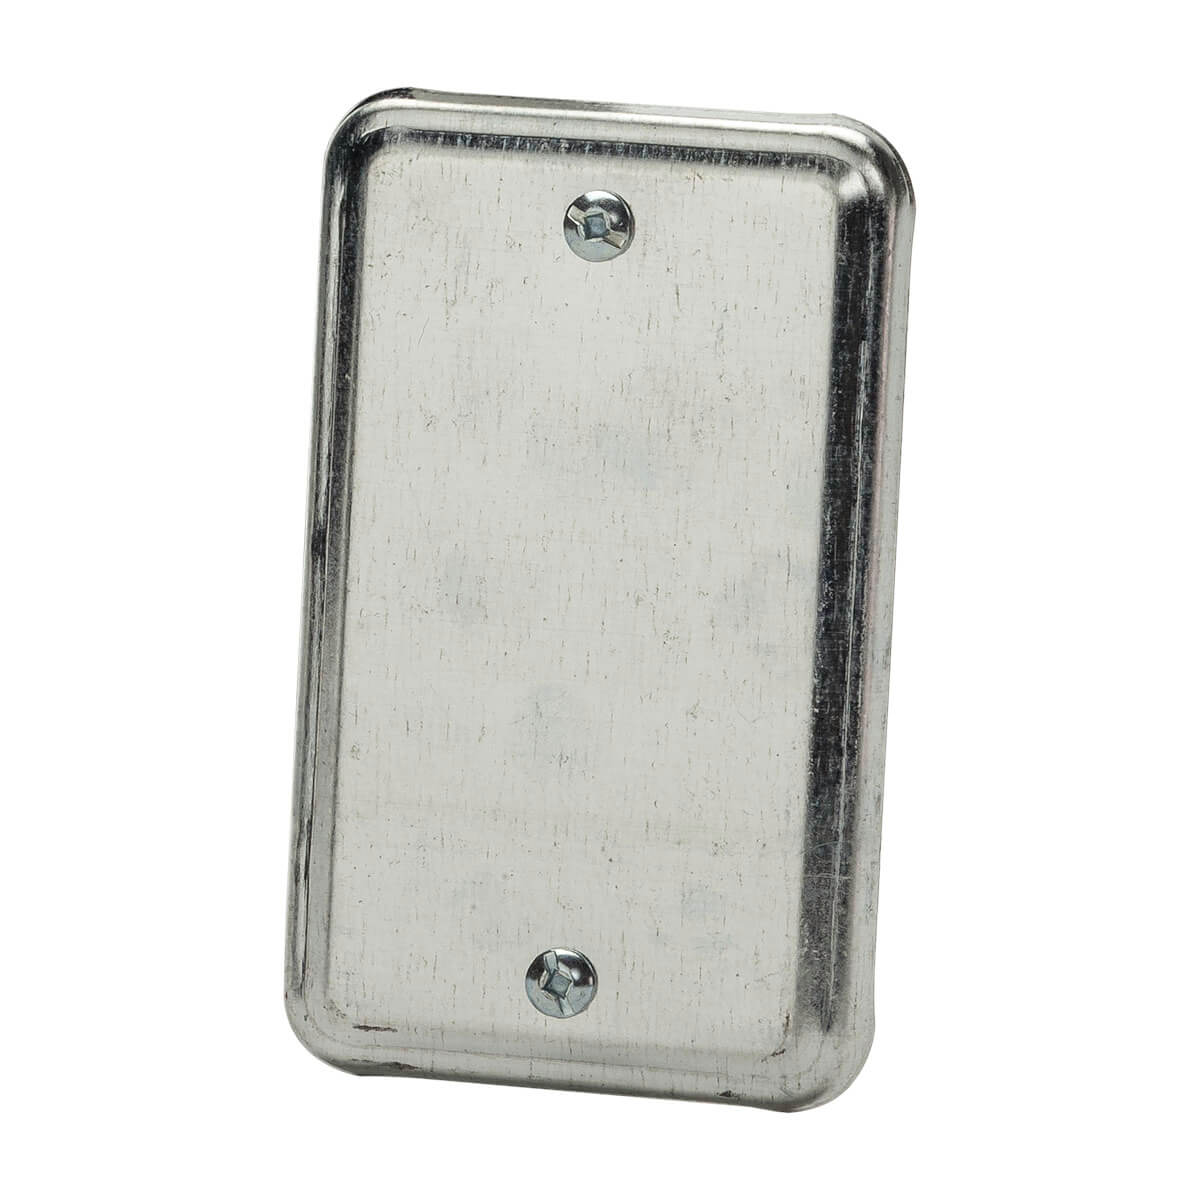 Utility Box Cover - Blank Cover